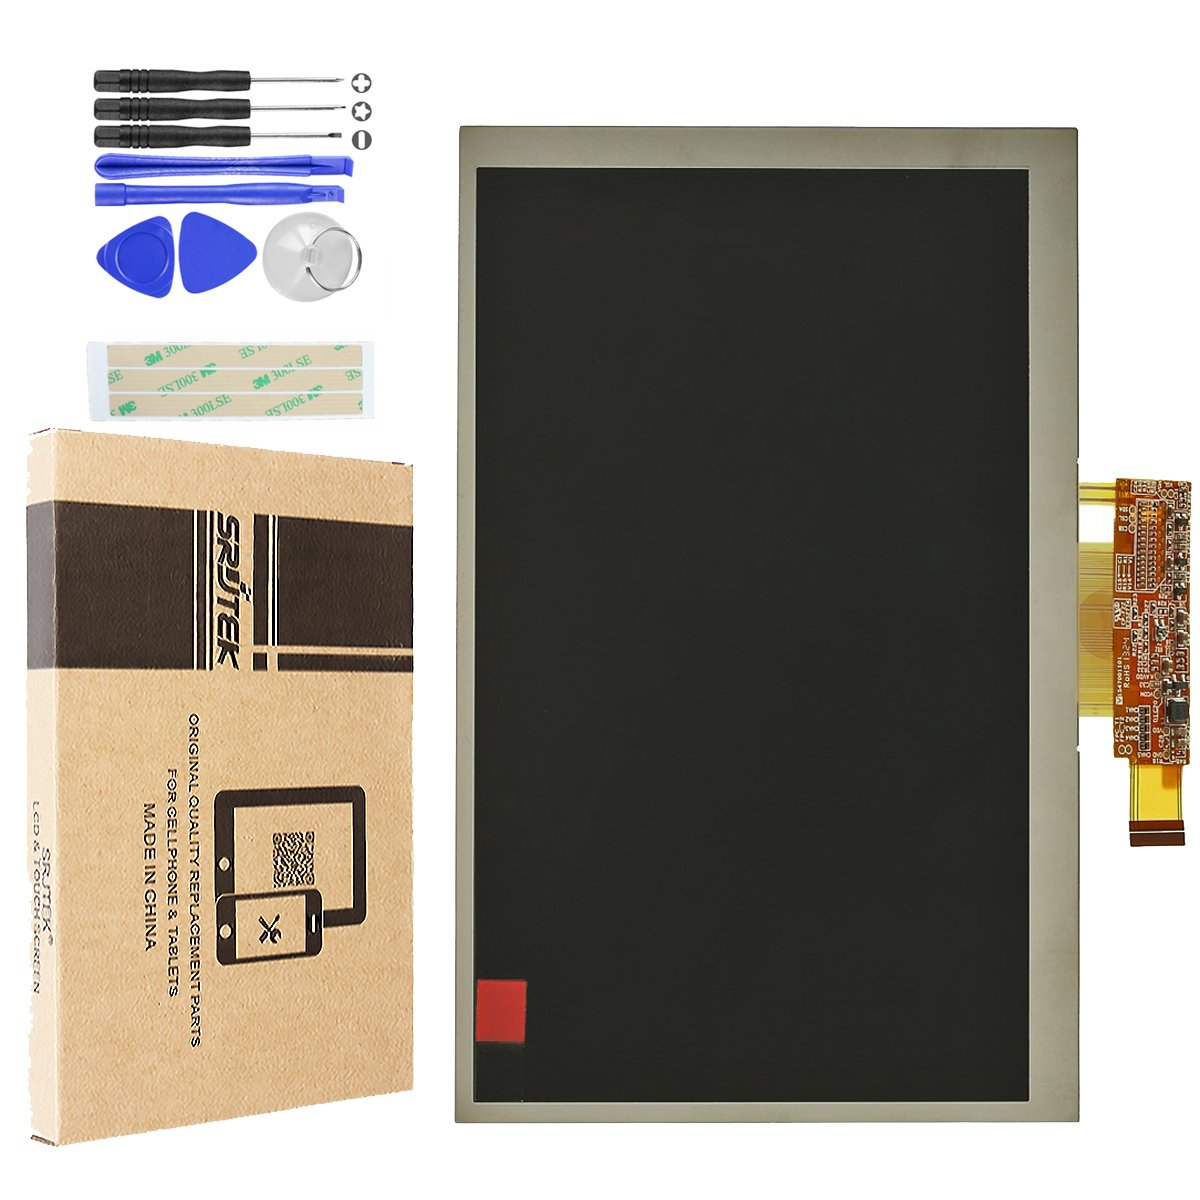 Replacement for Samsung Galaxy Tab 3 Lite 7.0 T113 T110 T111 T116,LCD Display Screen